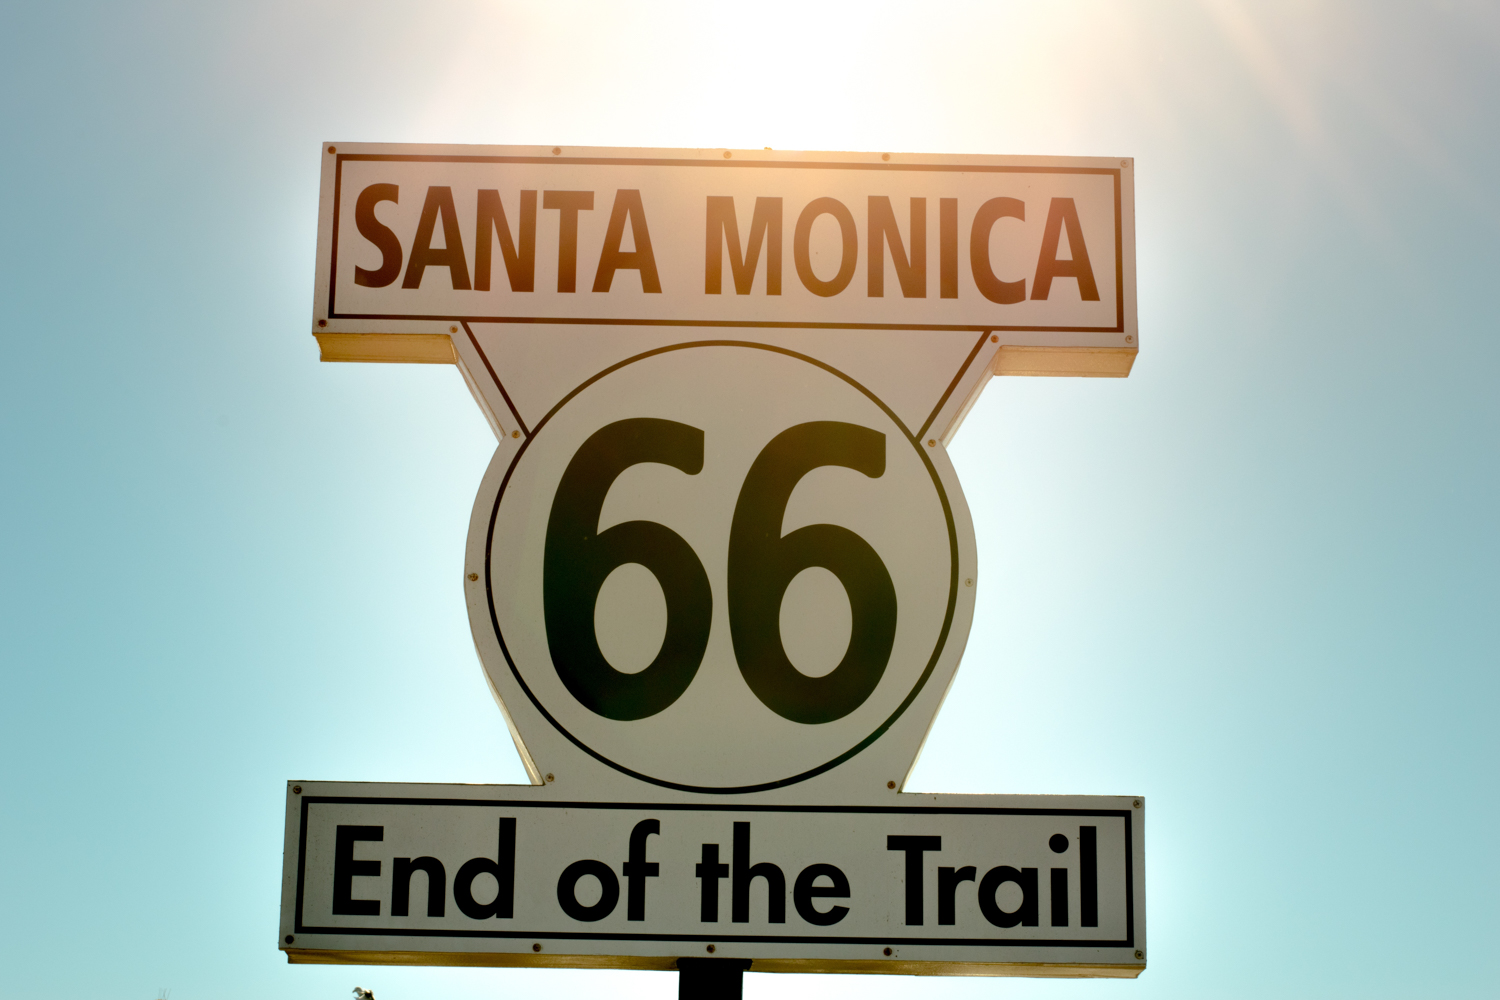 Route 66 became official 92 years ago today thumbnail